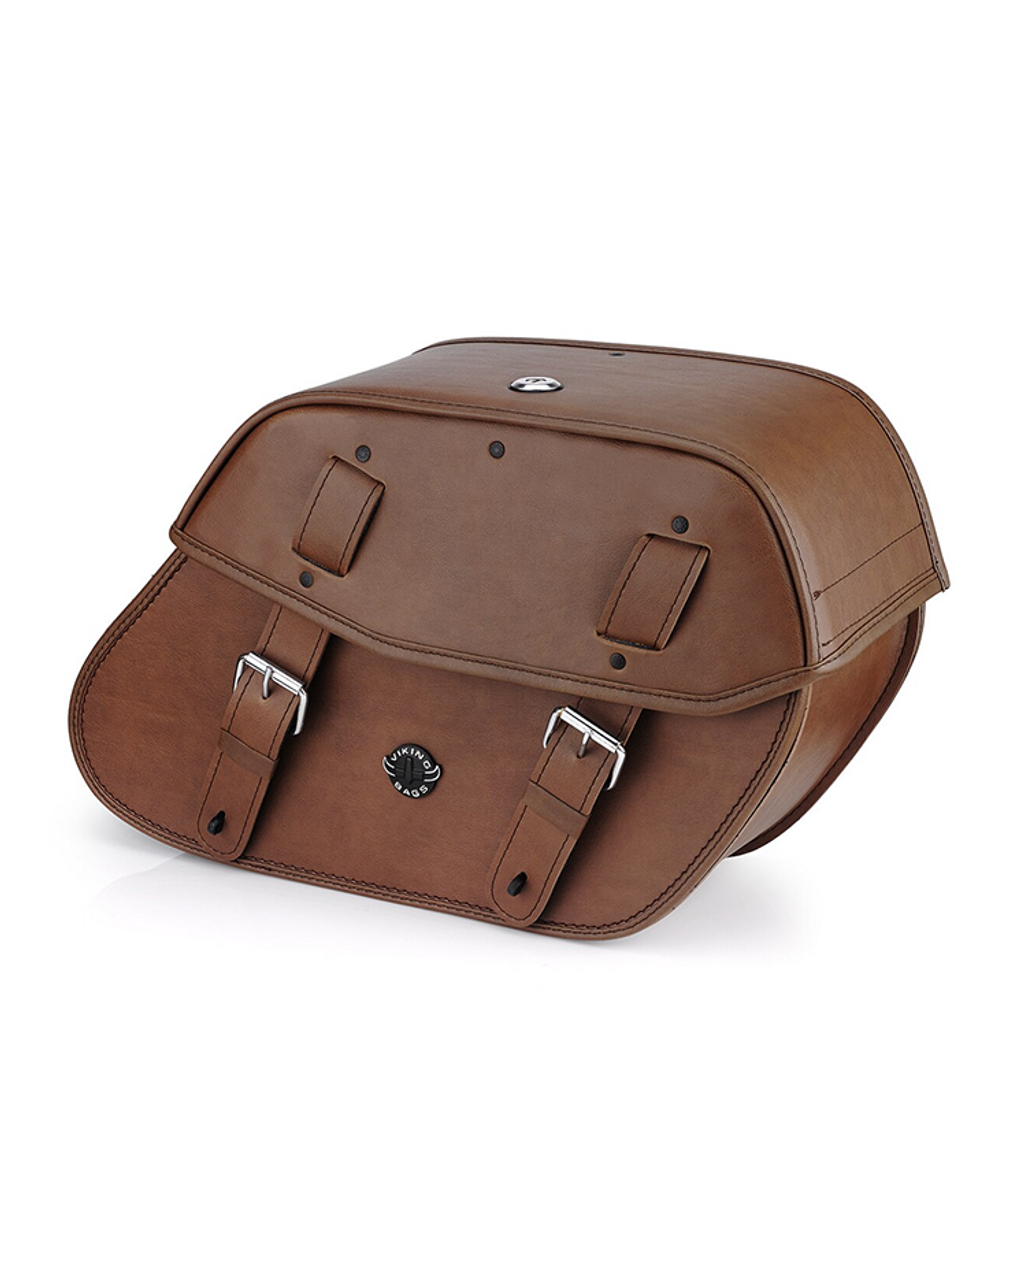 VikingBags Odin Brown Large Double Strap Leather Motorcycle Saddlebags For Harley Softail Breakout 114 FXBRS Main View